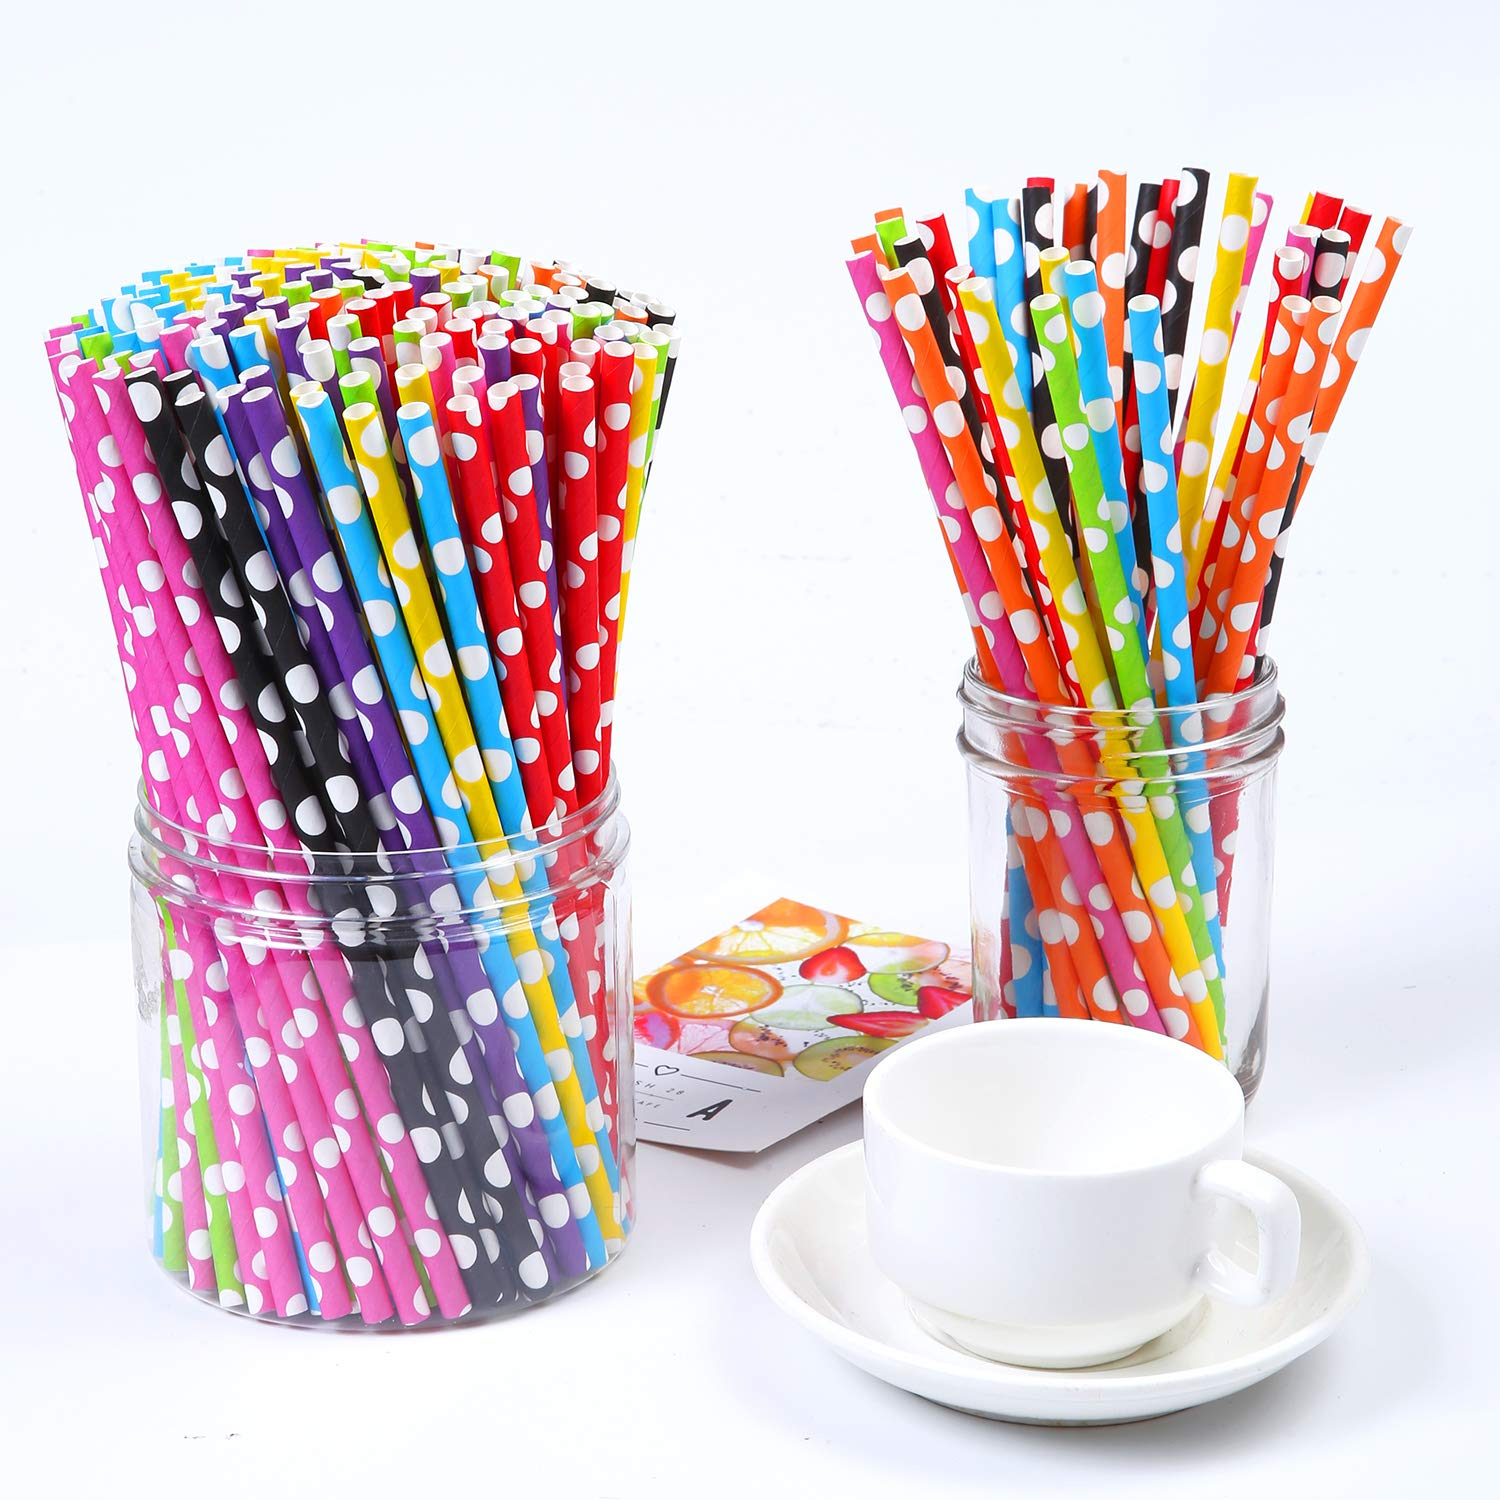 Tupa 200 Pieces Paper Straws Biodegradable Drinking Polka Dot Straw with Bulk Drinking Straws Decorations for Wedding Supplies and Party Favors